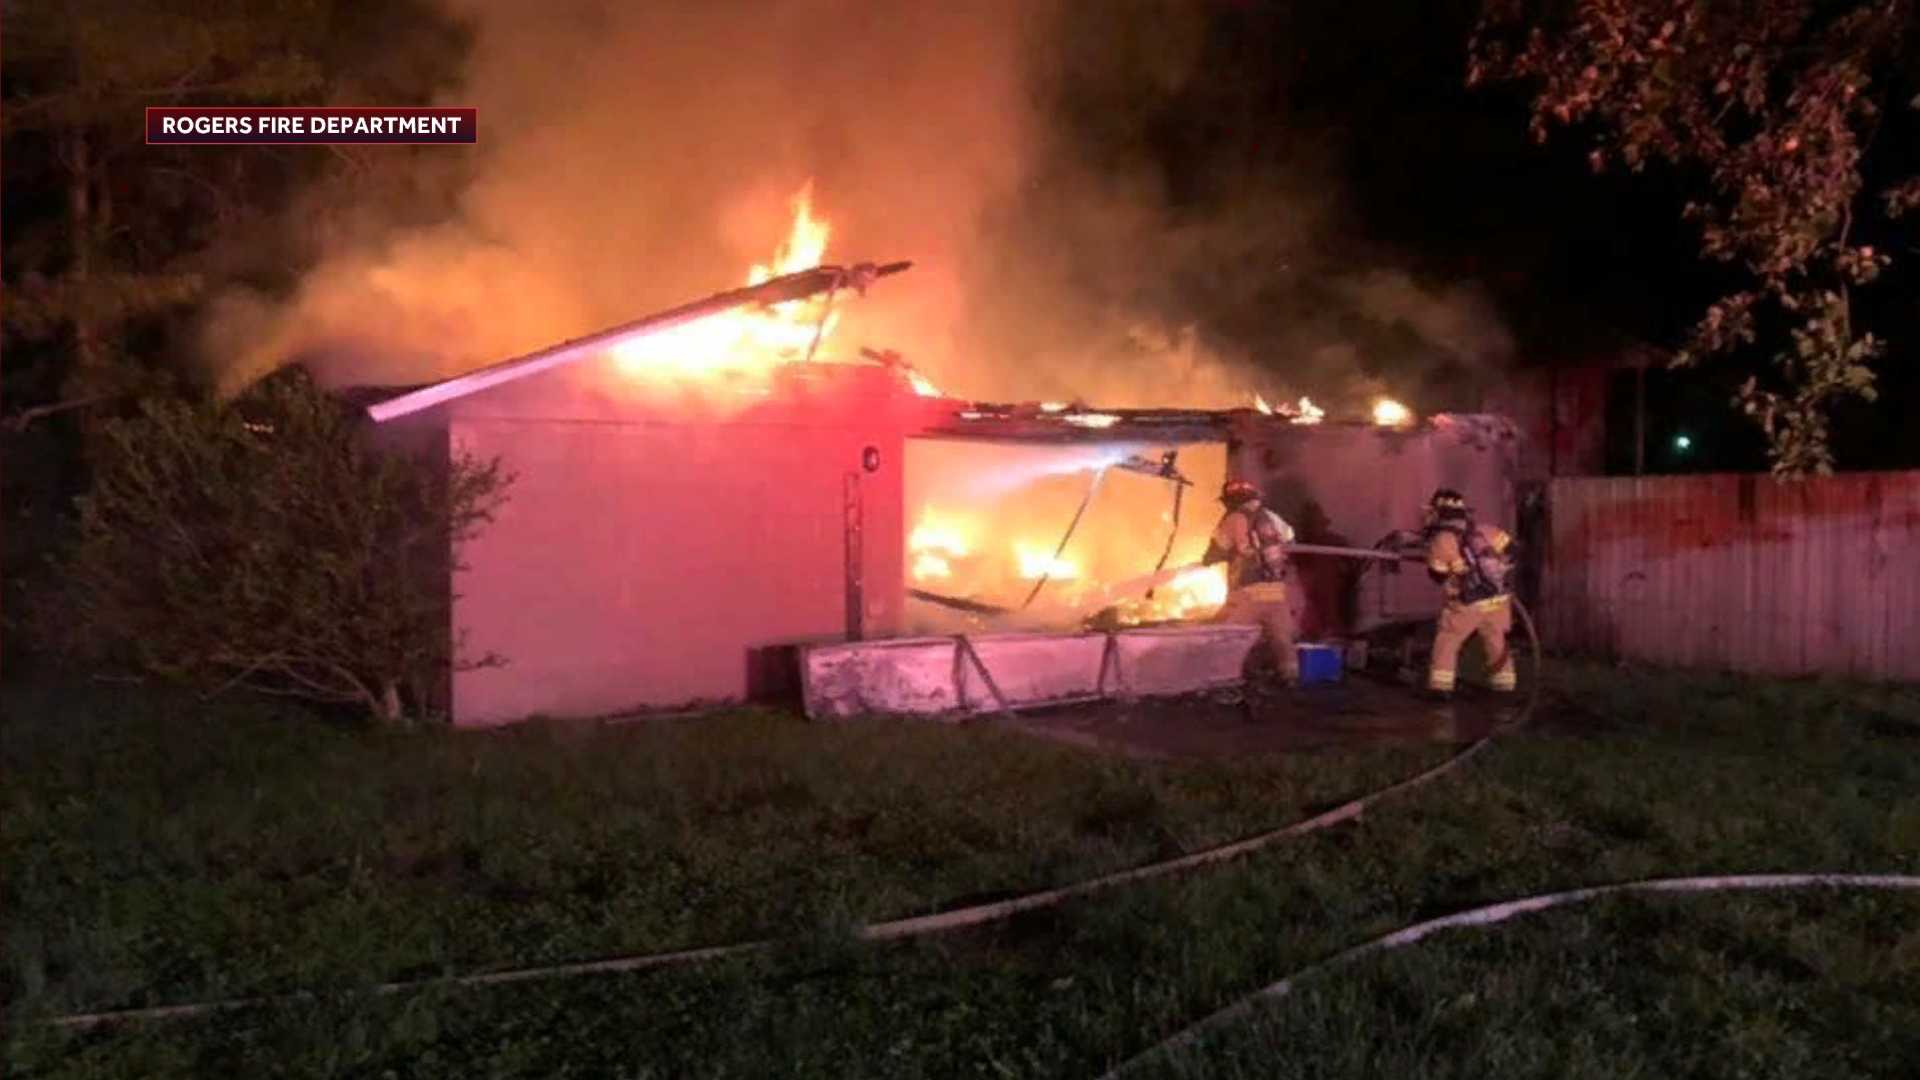 Roger garage catches fire overnight thumbnail